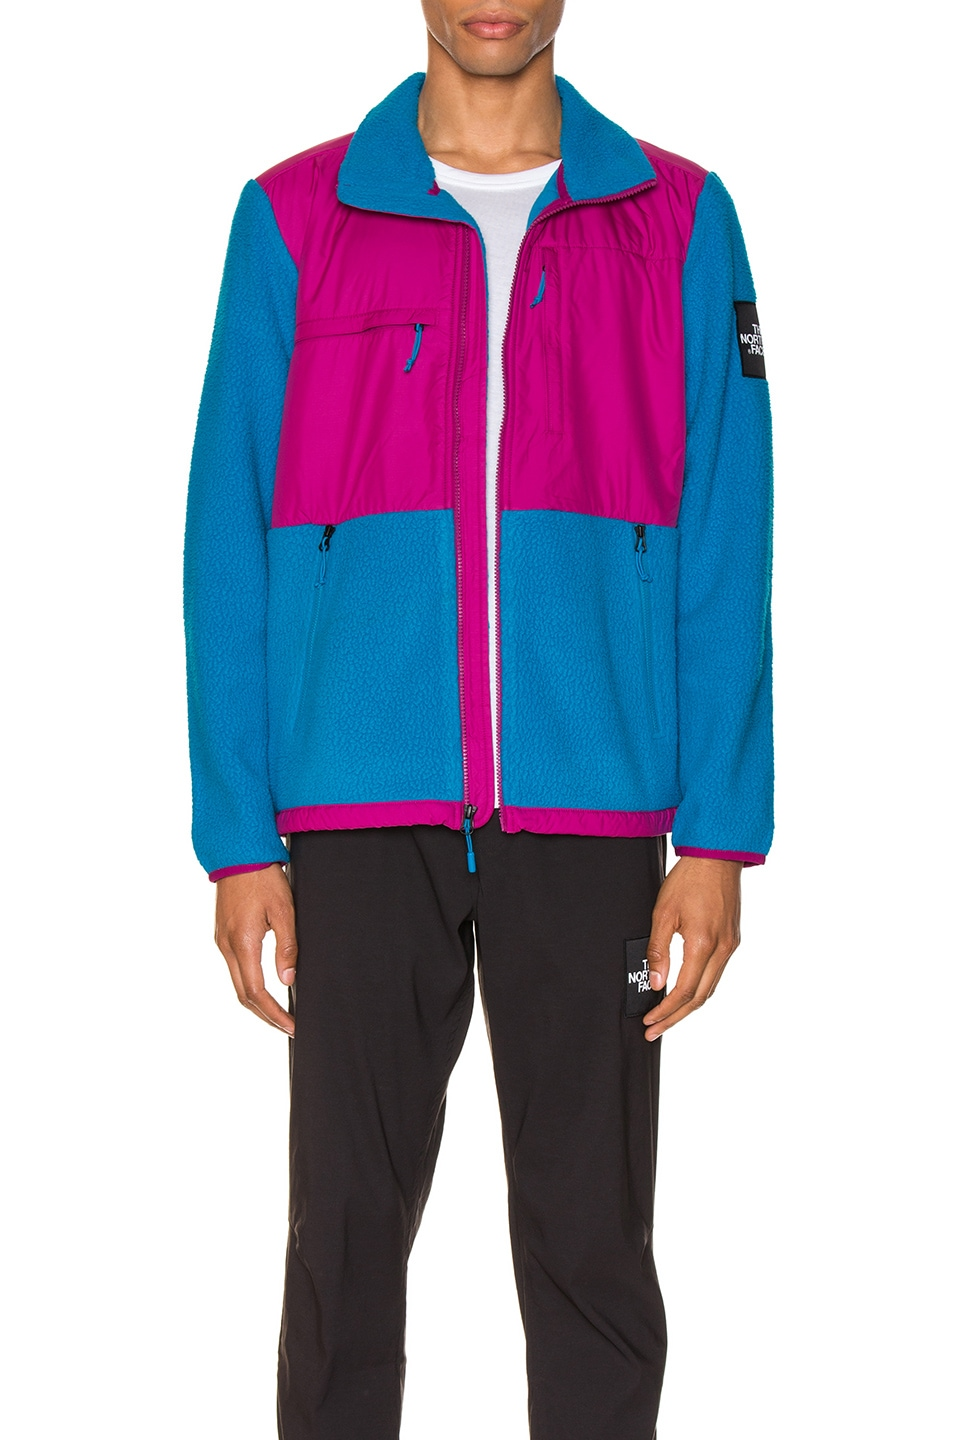 Image 1 of The North Face Black Box Denali Fleece Jacket in Acoustic Blue & Festival Pink